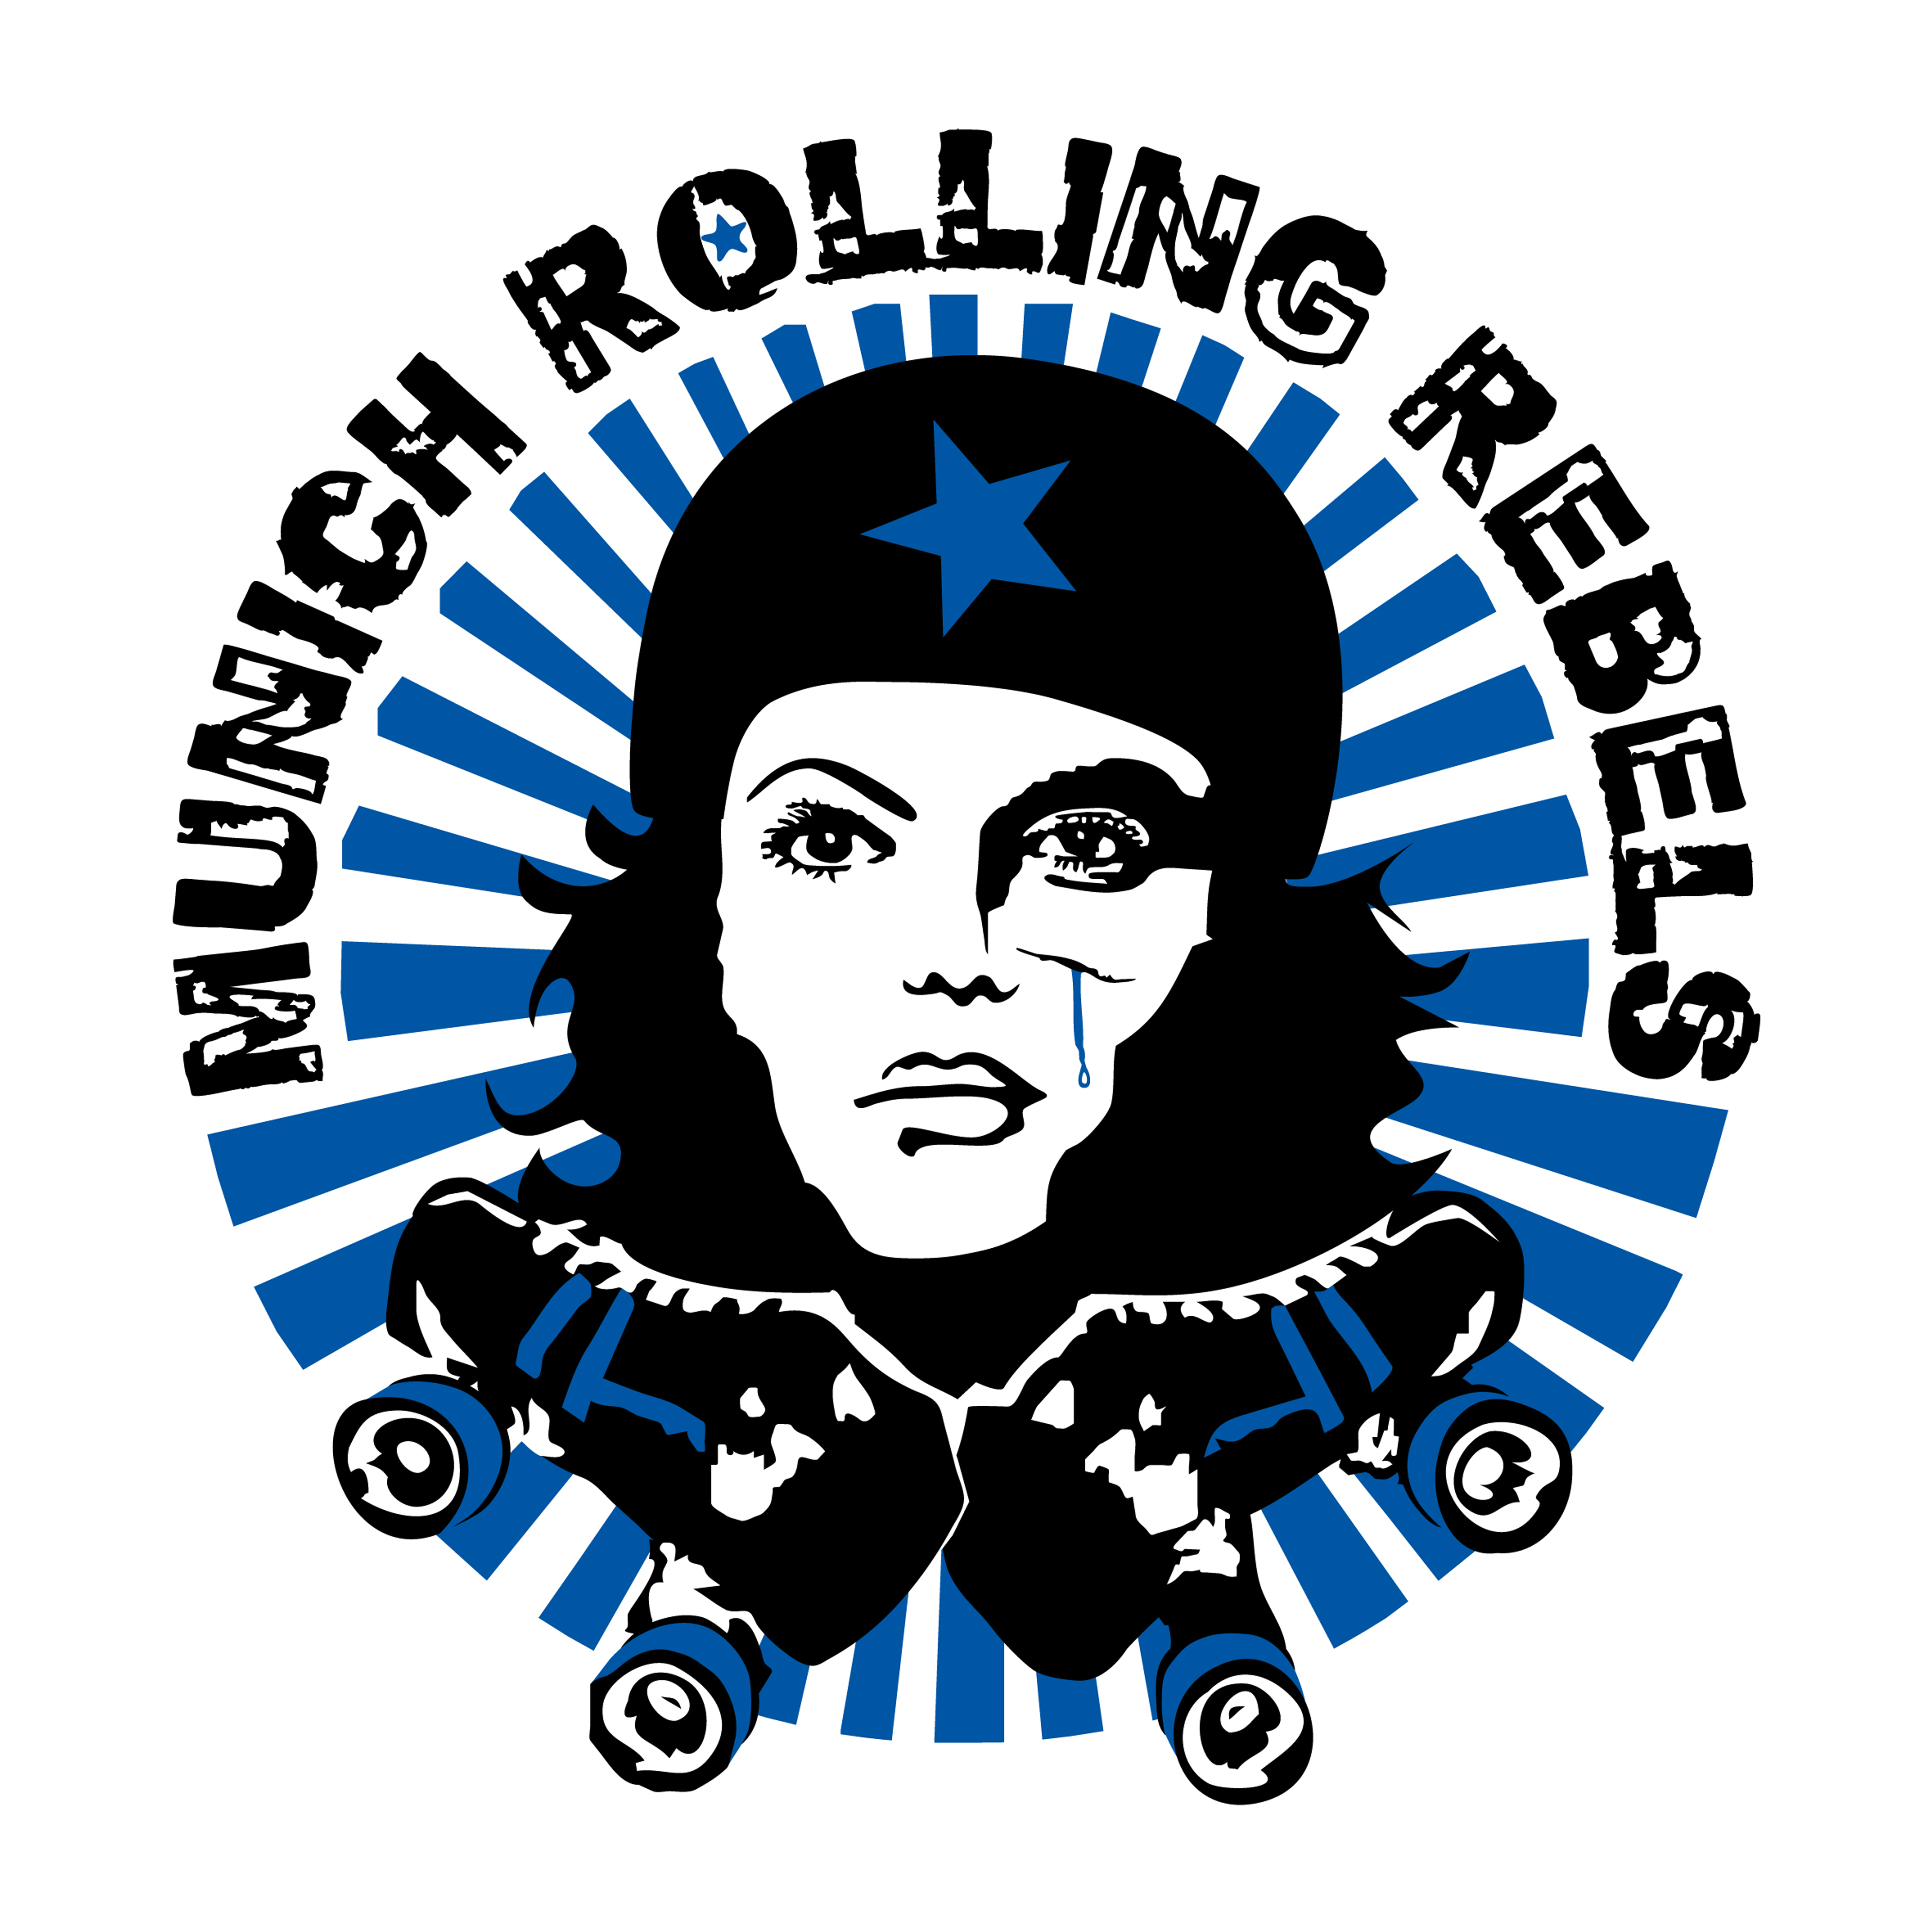 Munich Rolling Rebels